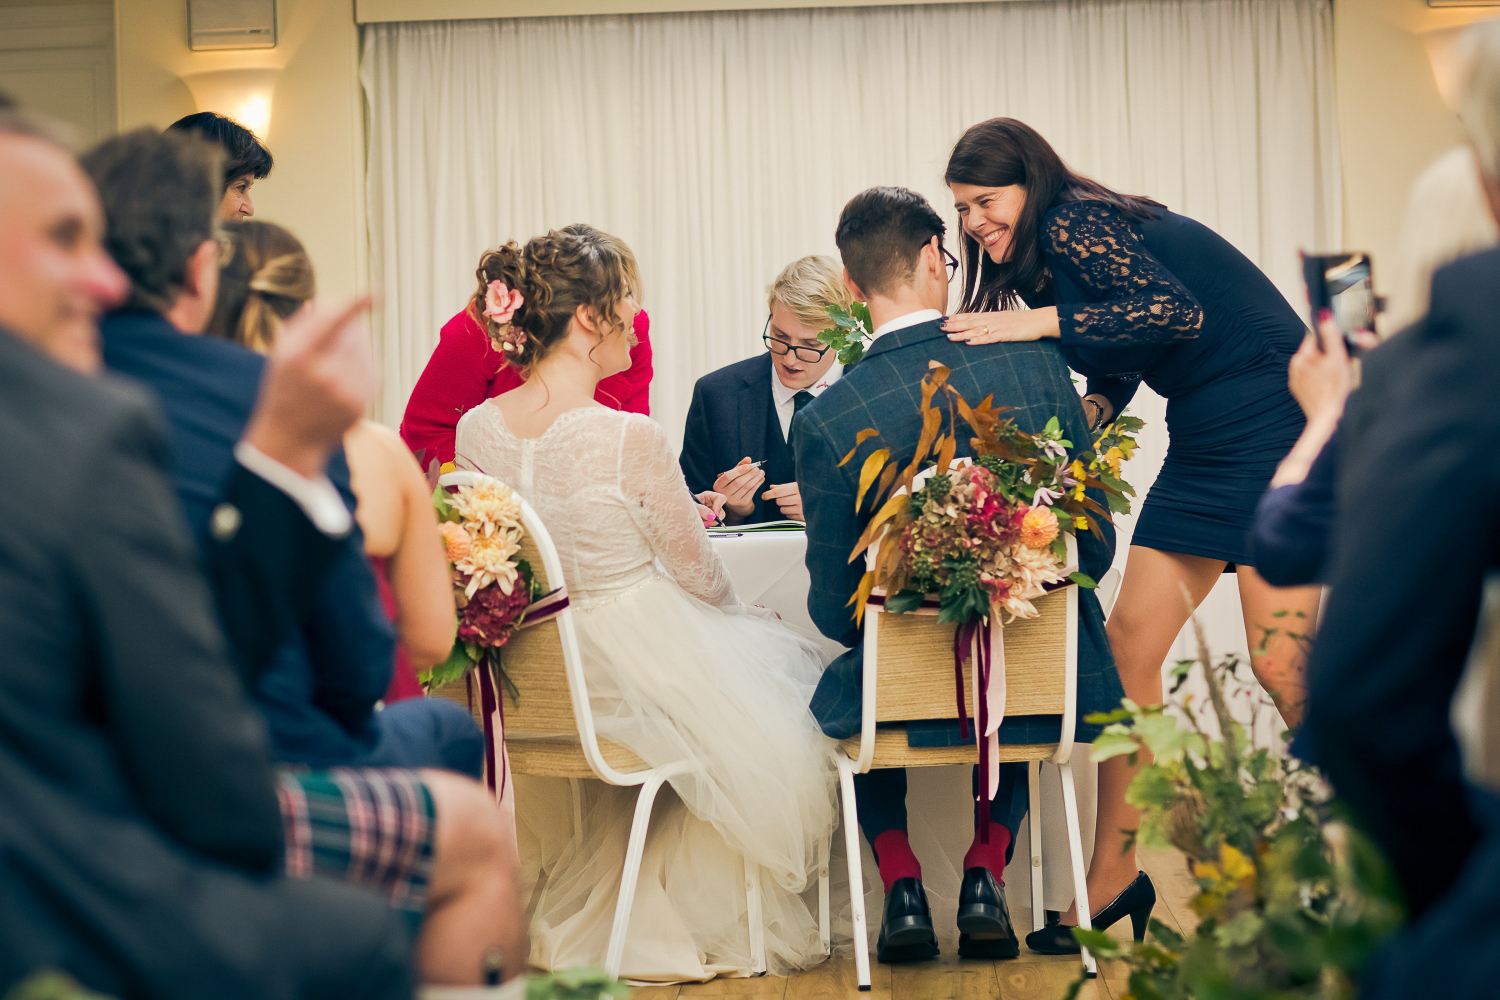 A guest congratulates the groom, laughing and overjoyed